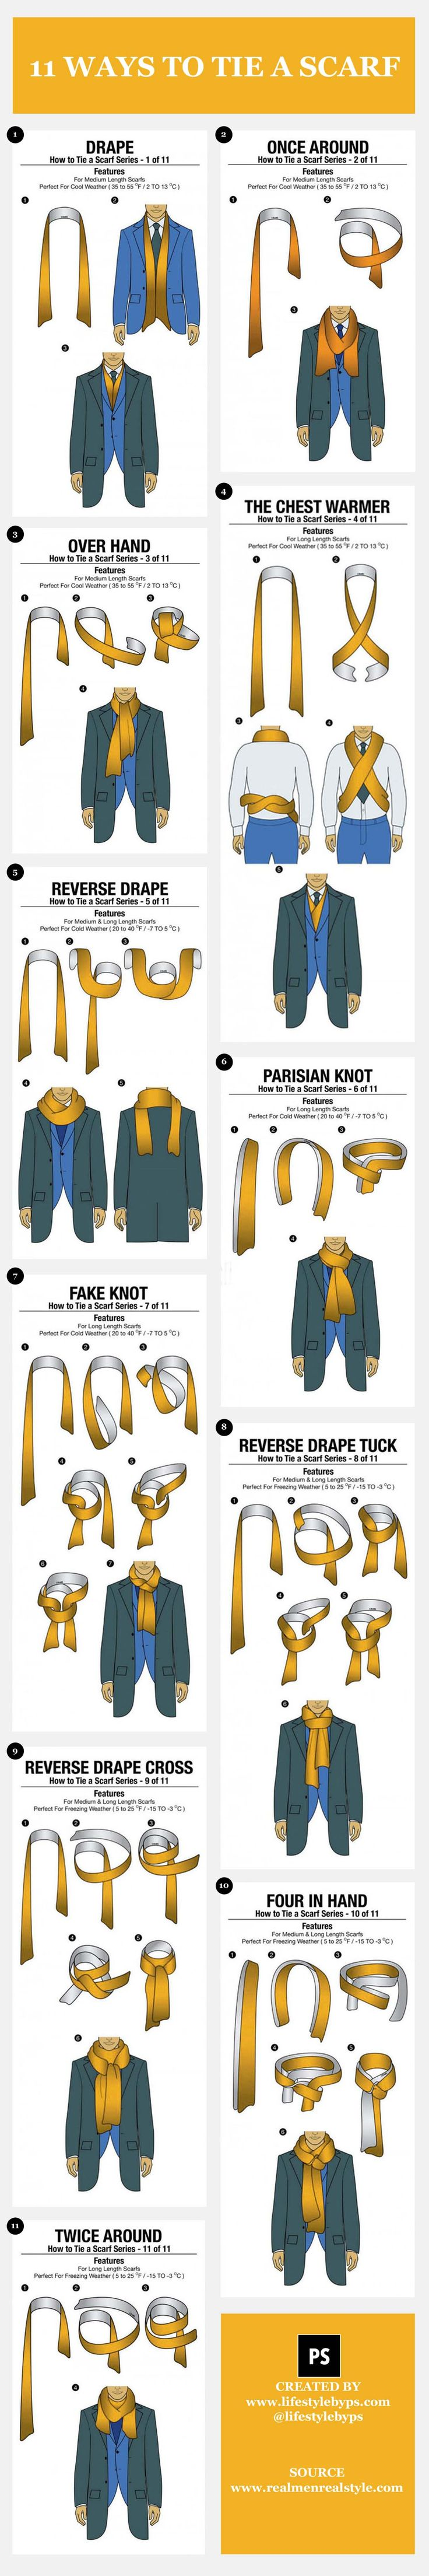 11 Ways To Tie A Scarf #Infographic #Scarf #Fashion